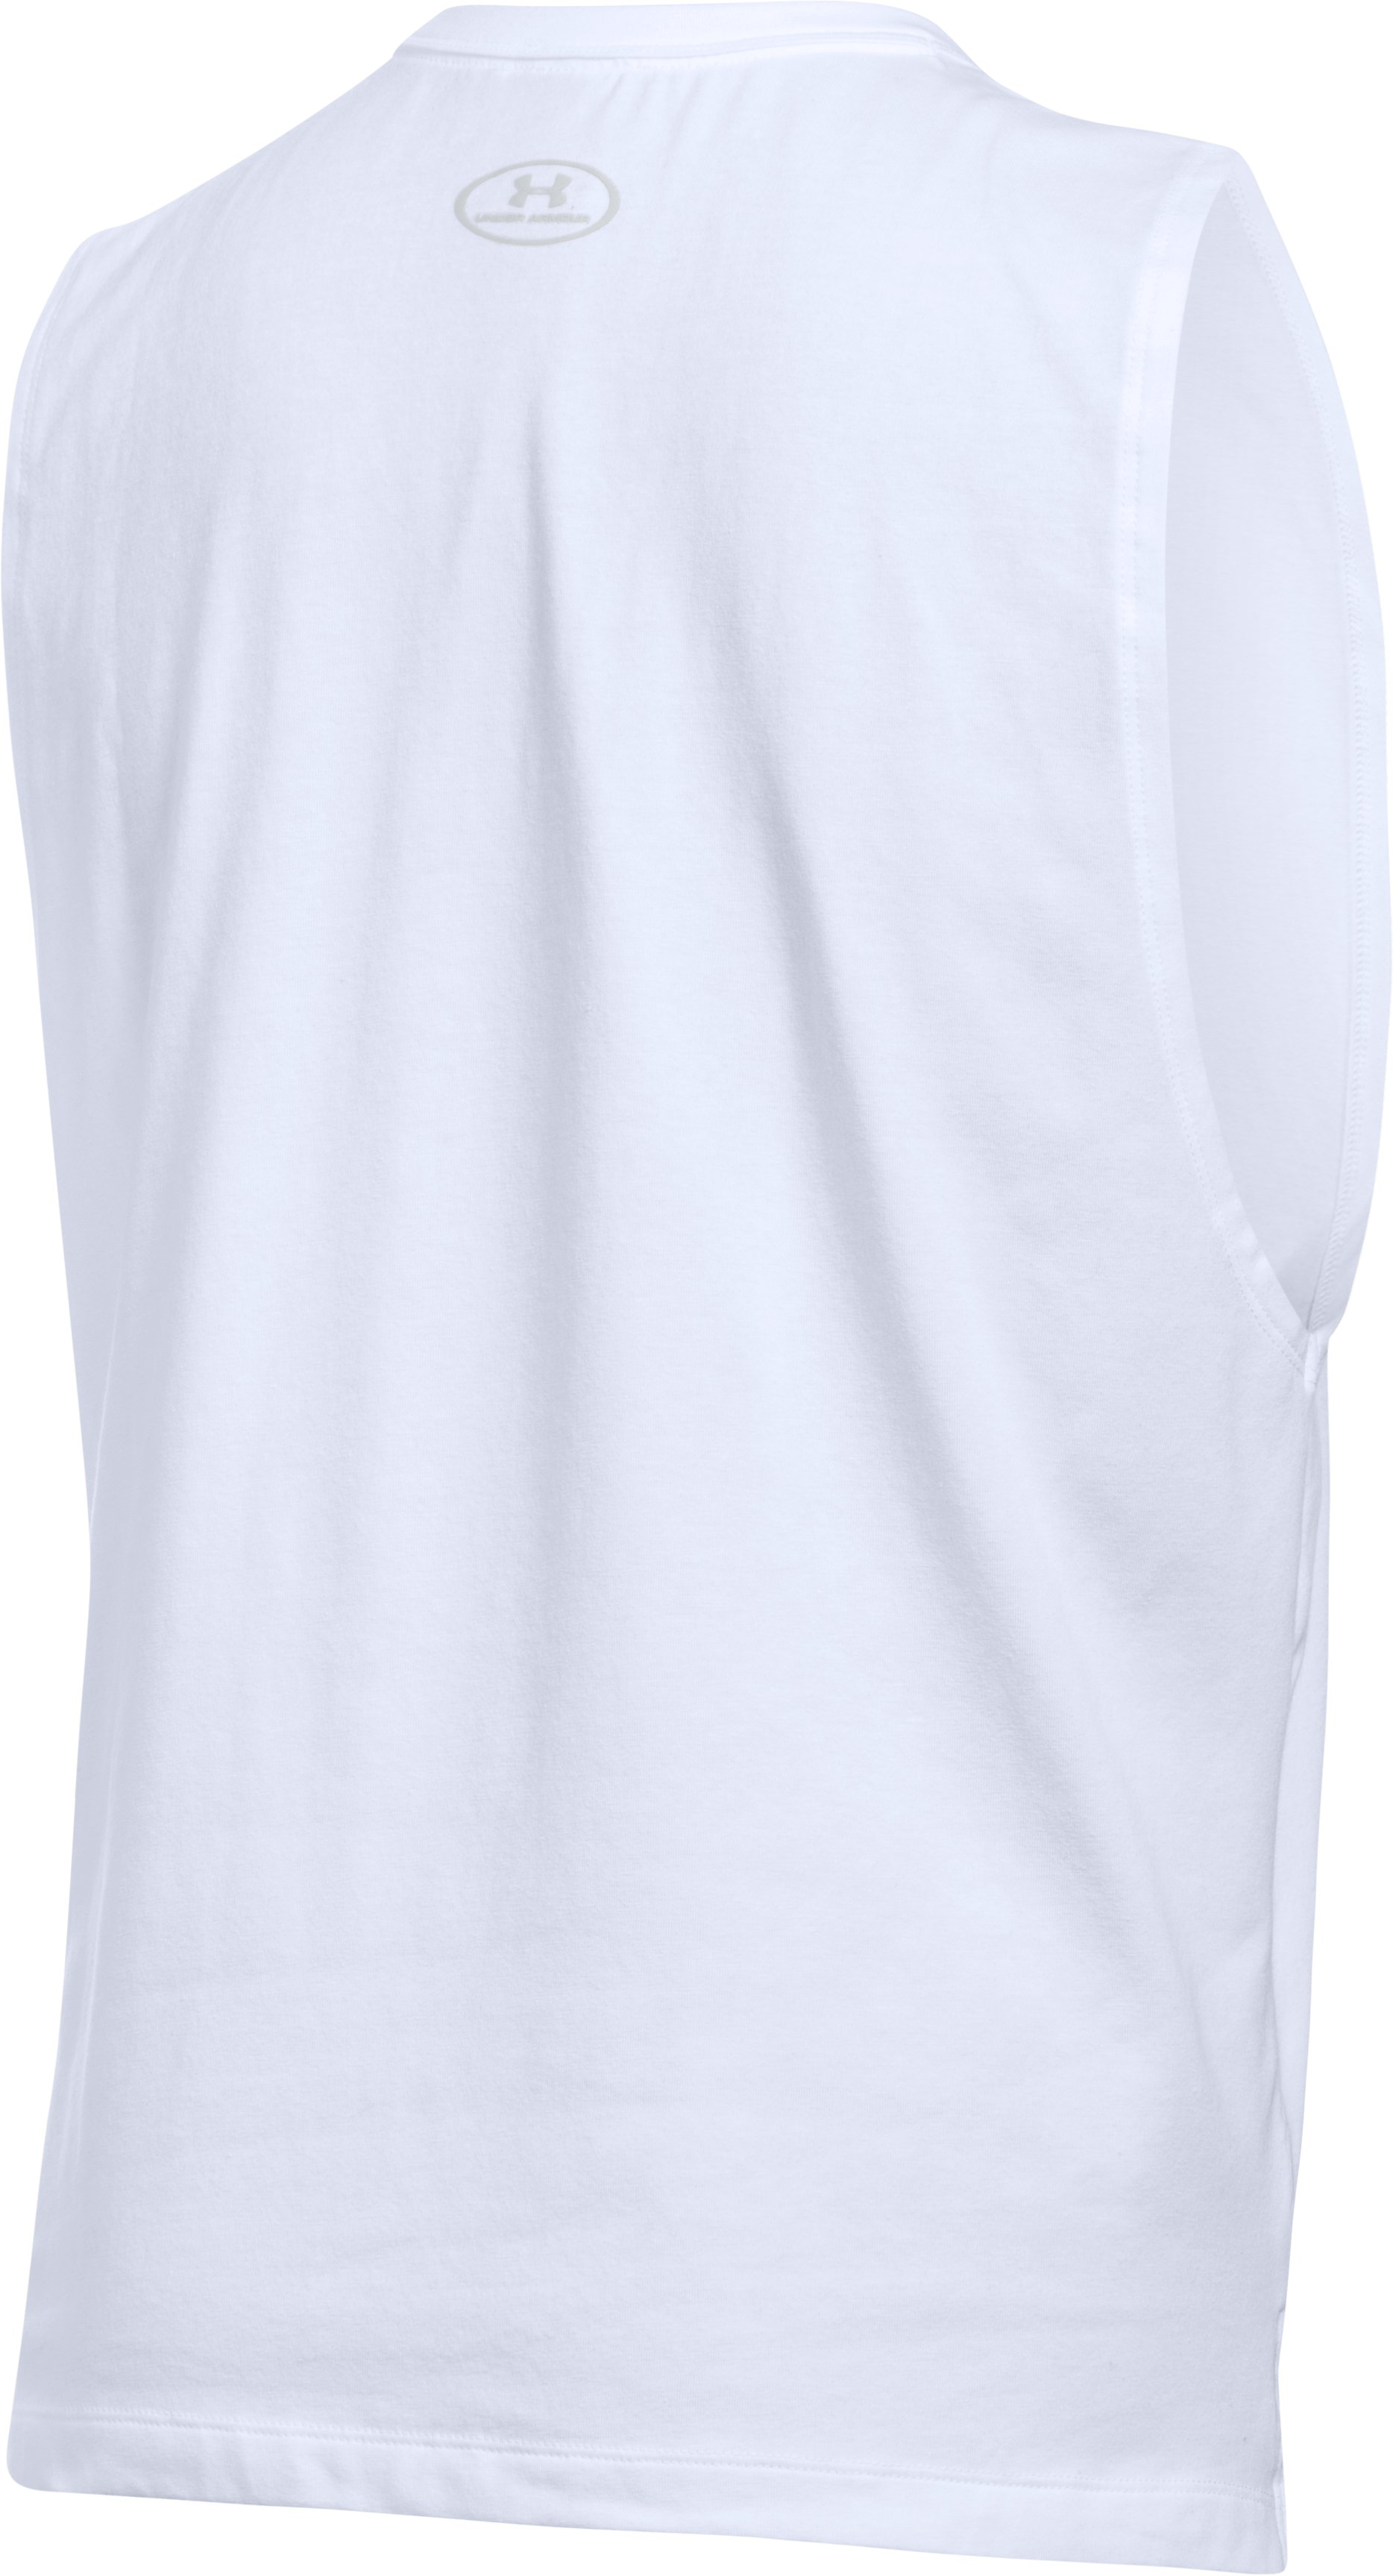 Women's UA Brunch Crunch Muscle T, White